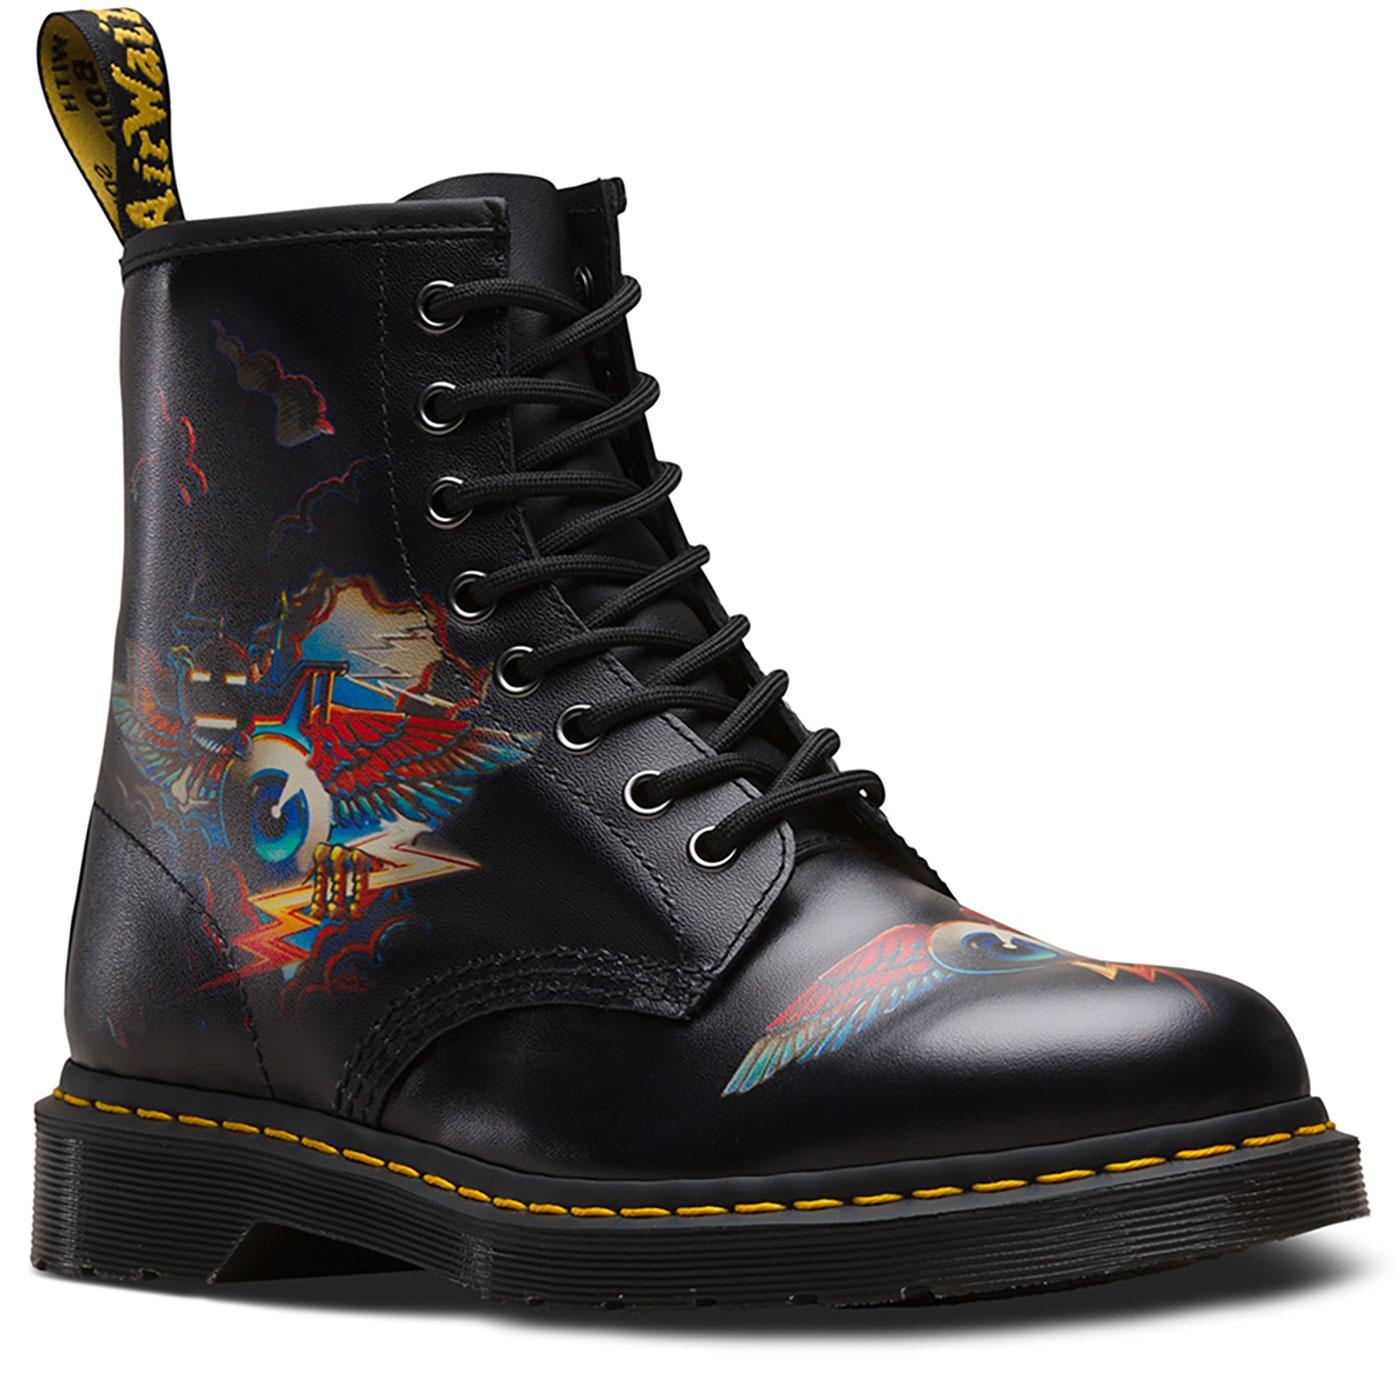 1460 DR MARTENS X RICK GRIFFIN Eye Graphic Boots